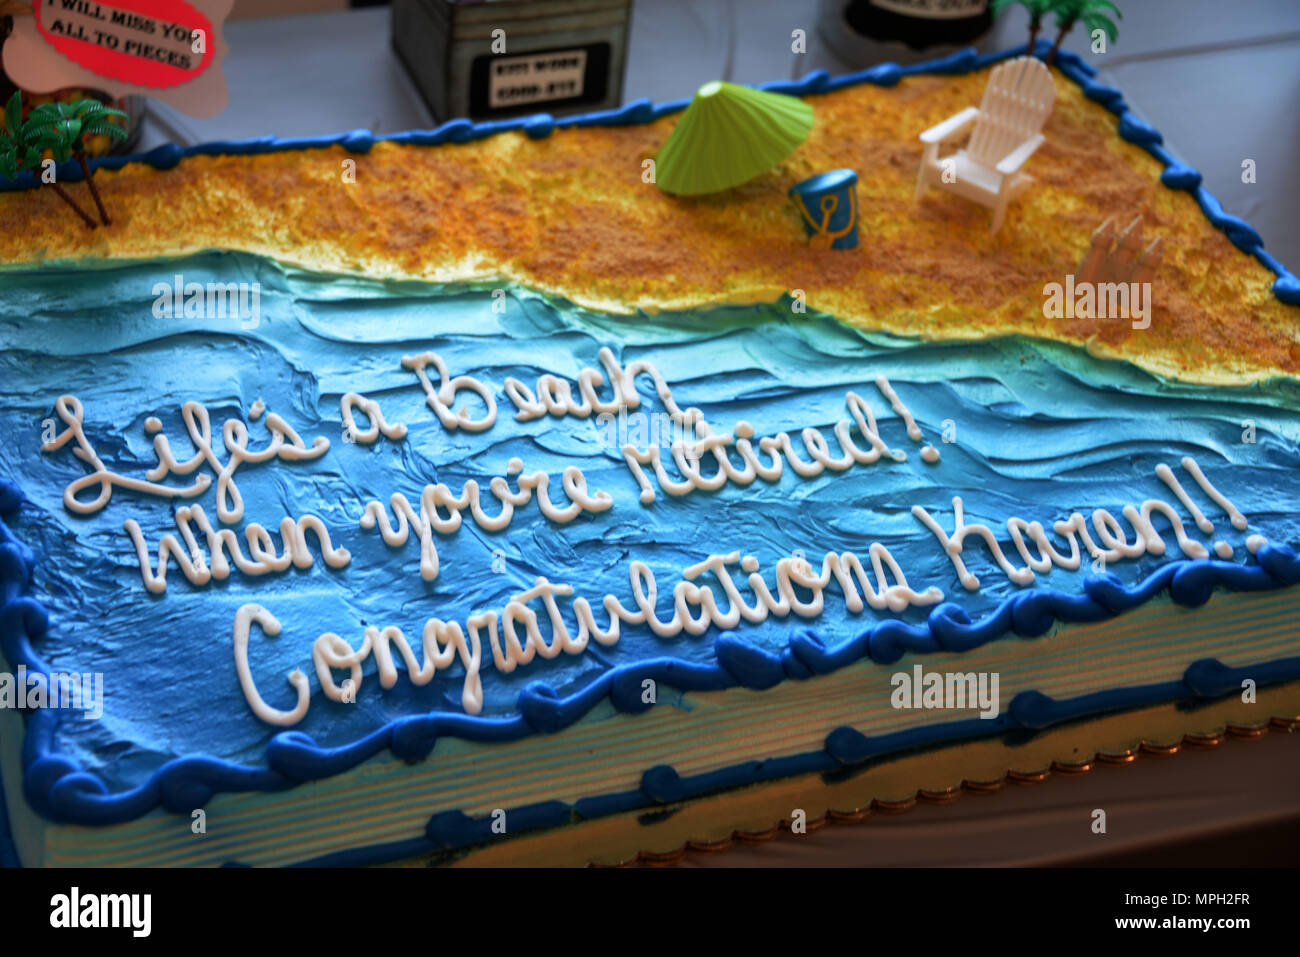 The Cake For The Retirement Of Karen Foley A Program Analyst With